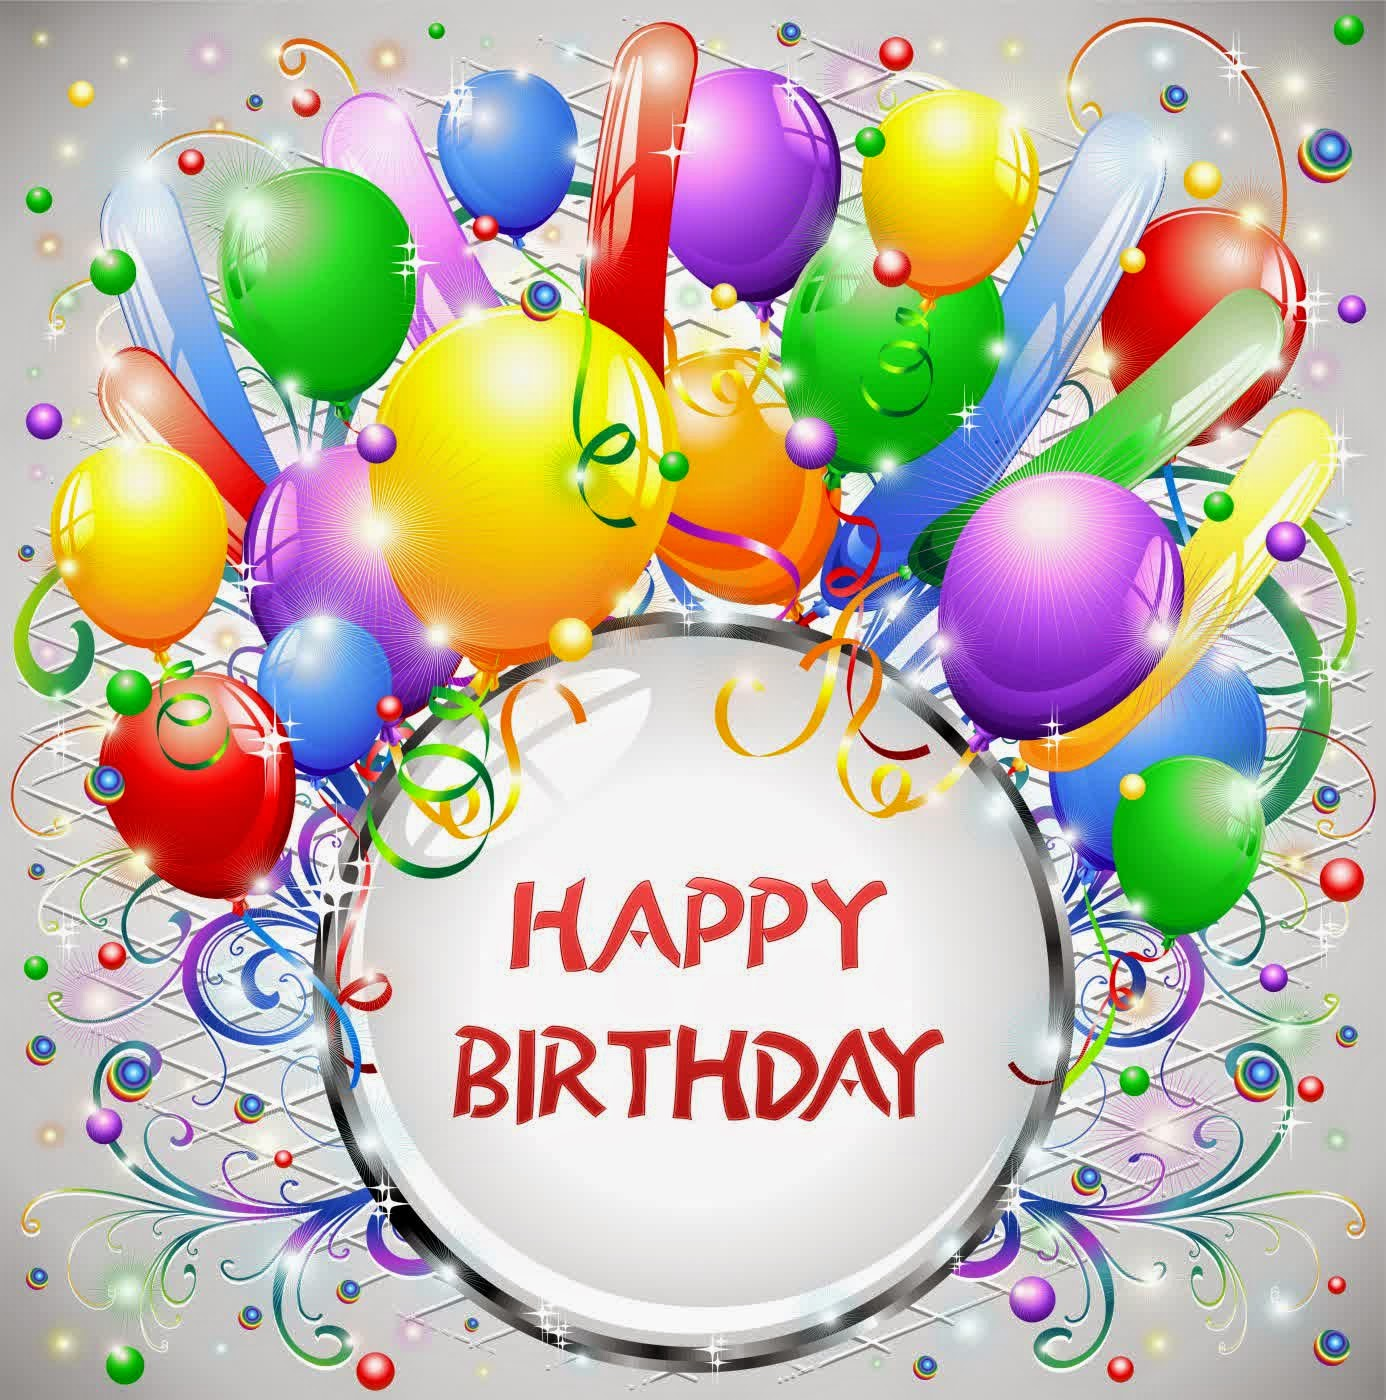 Happy-Birthday-to-You-Image-Card